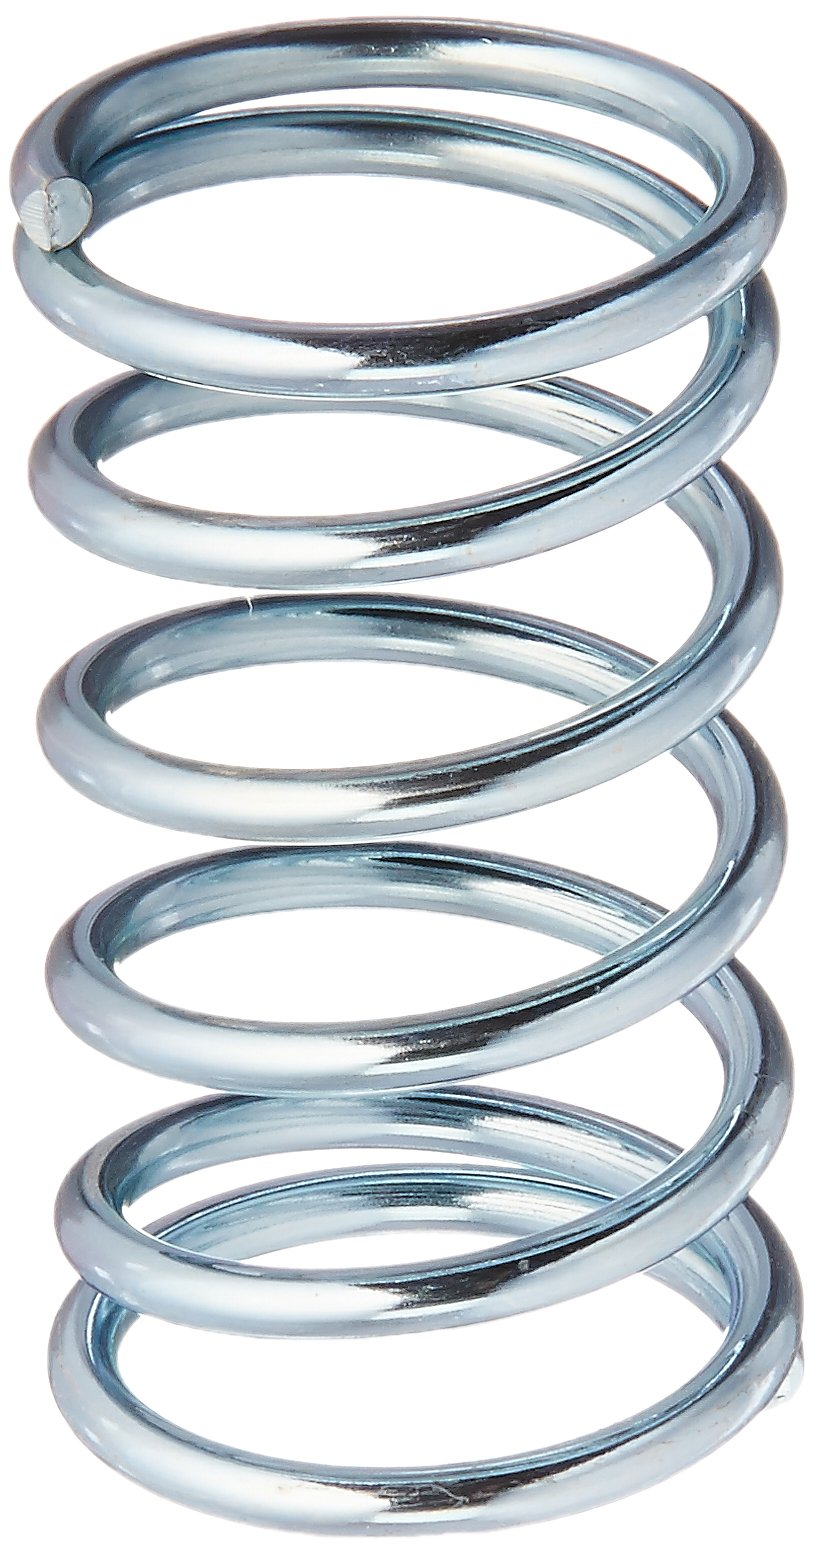 Prime-Line Products SP 9728 Compression Spring with .054'' Diameter, 9/16'' x 1''